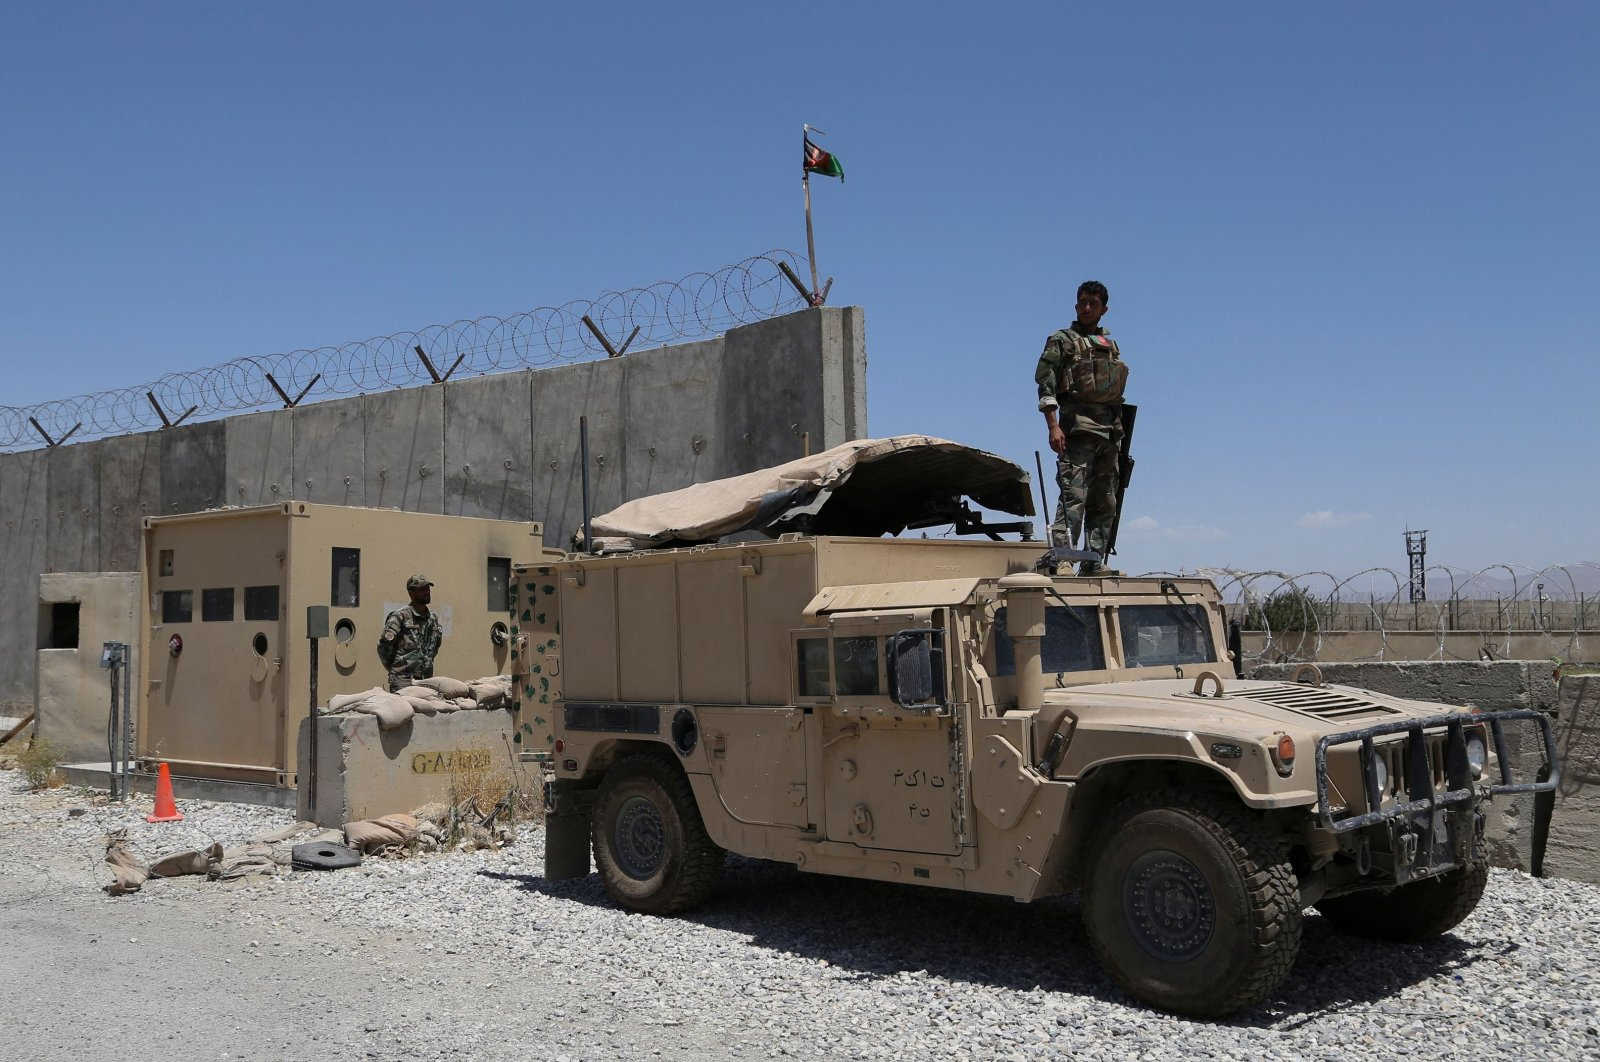 An Afghan National Army (ANA) soldier looks out while standing on a Humvee vehicle at Bagram Air Base after all U.S. and NATO troops left, some 70 km north of Kabul, July 2, 2021. (AFP Photo)